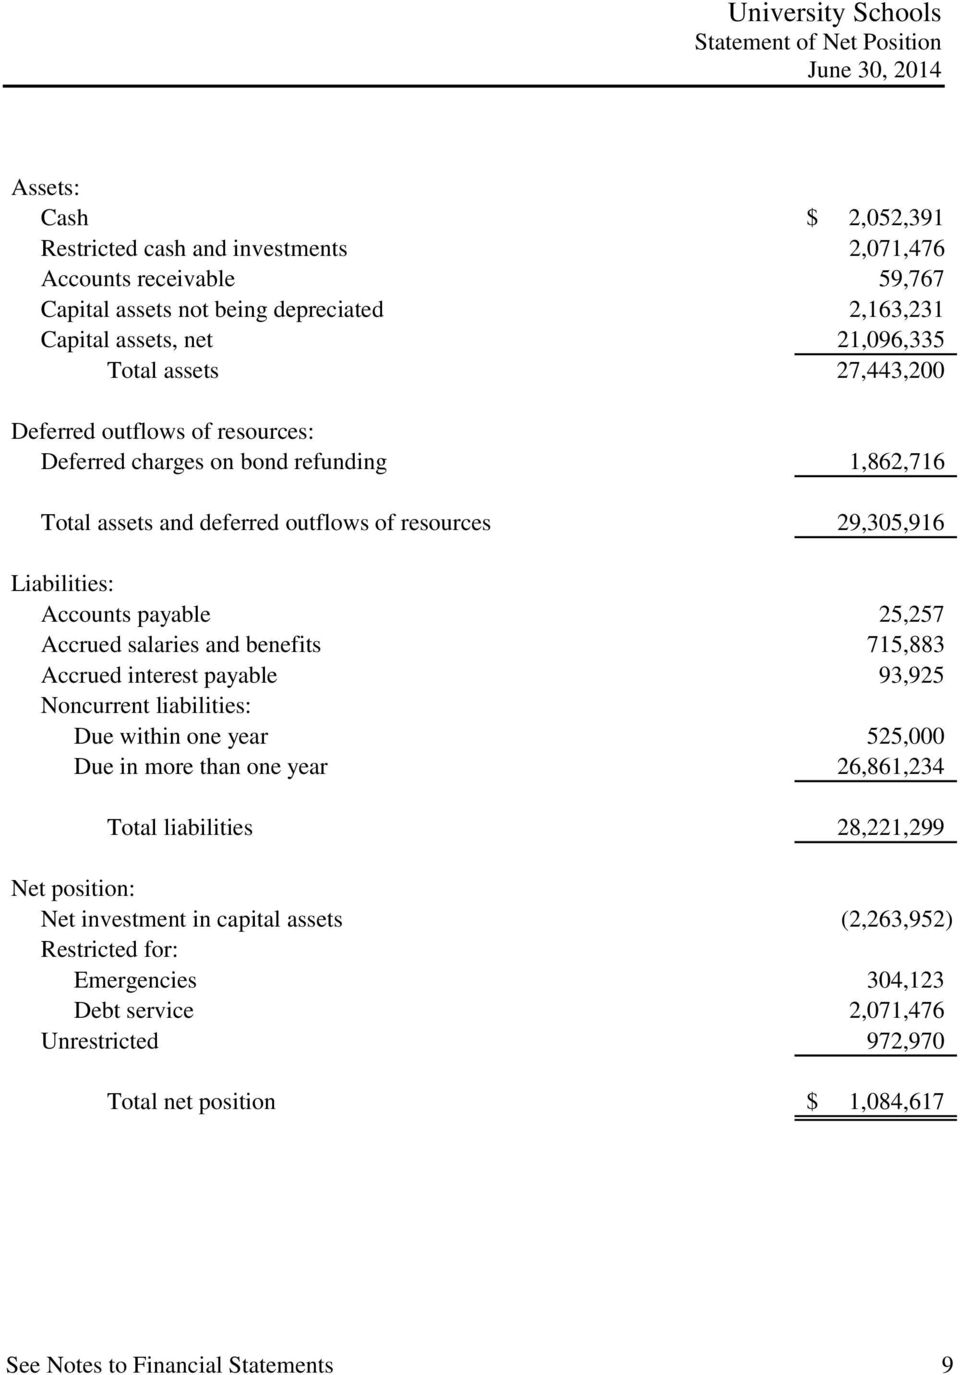 payable 25,257 Accrued salaries and benefits 715,883 Accrued interest payable 93,925 Noncurrent liabilities: Due within one year 525,000 Due in more than one year 26,861,234 Total liabilities